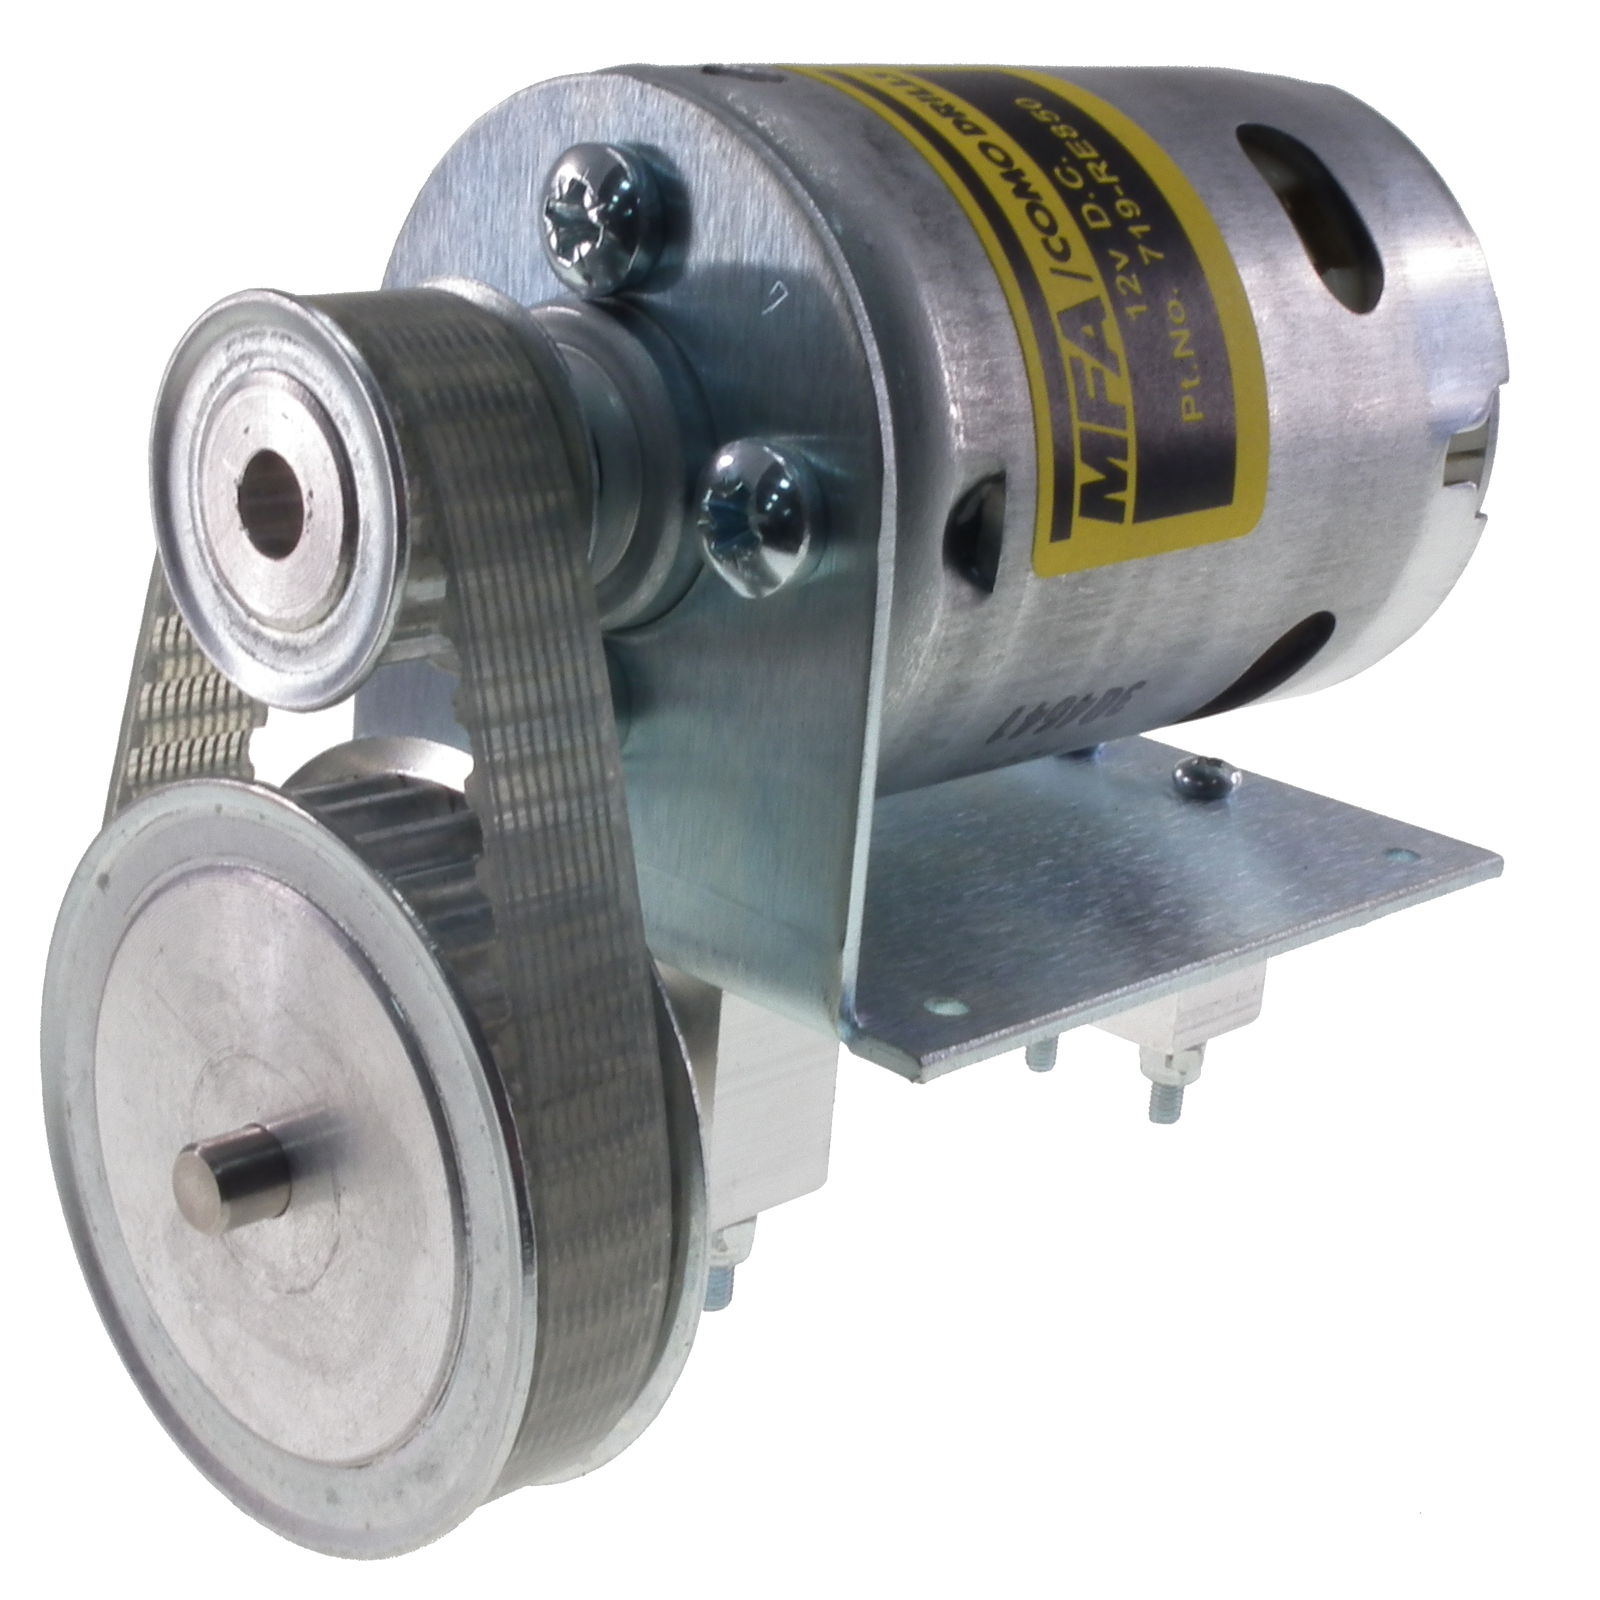 850 12v Dc Motor With 2 1 1 Belt Reduction Drive Mfa